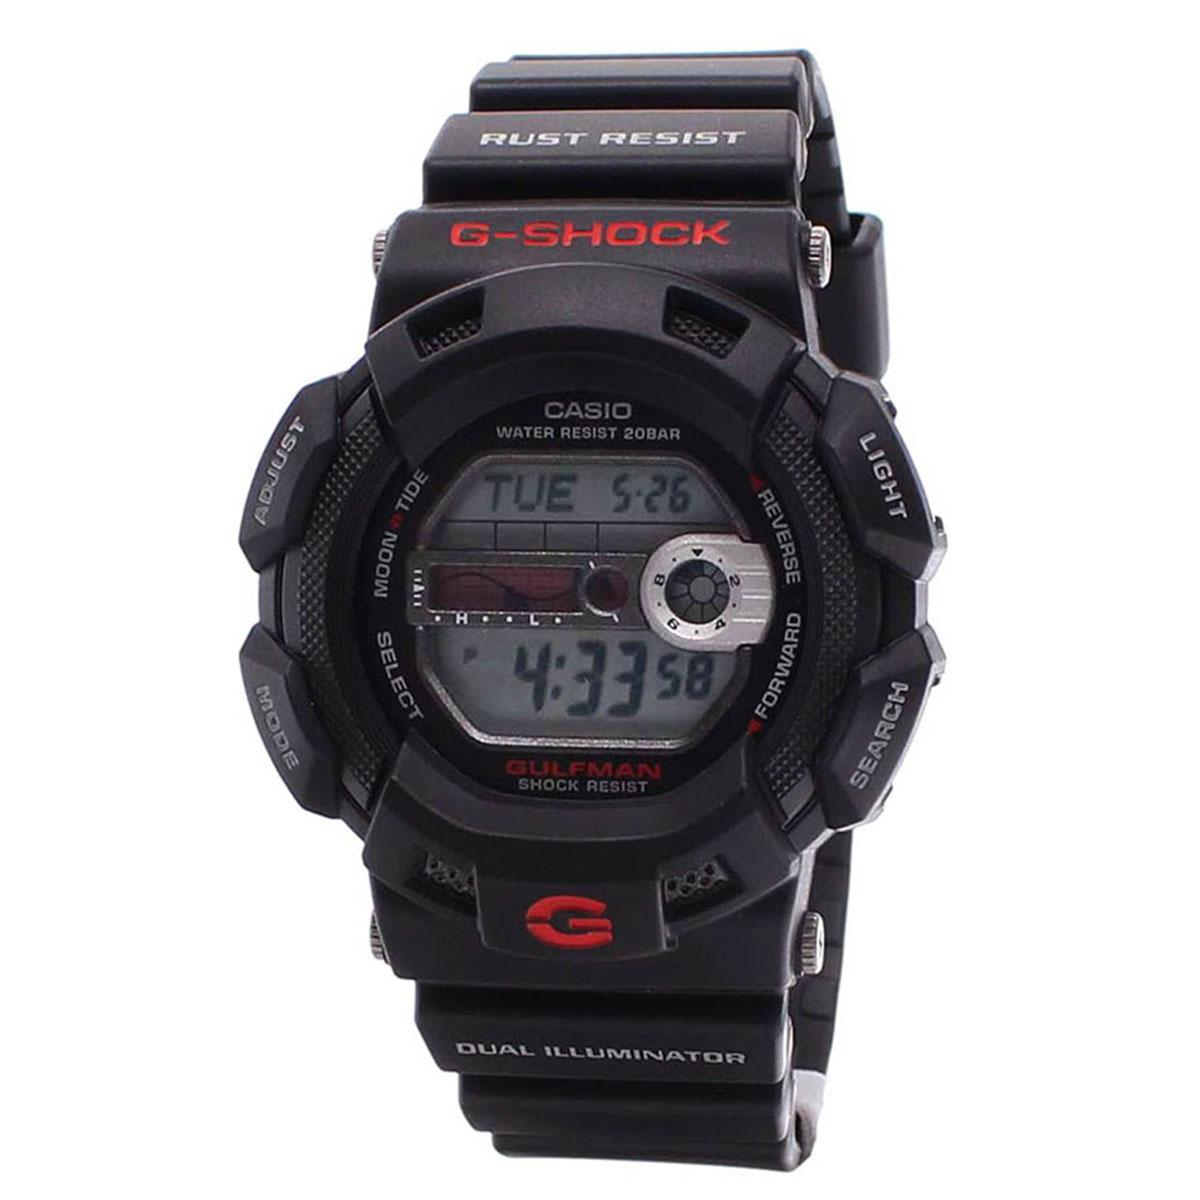 Price Casio Watch G Shock Professional Black Resin Case Resin Strap Mens G 9100 1D Casio Original